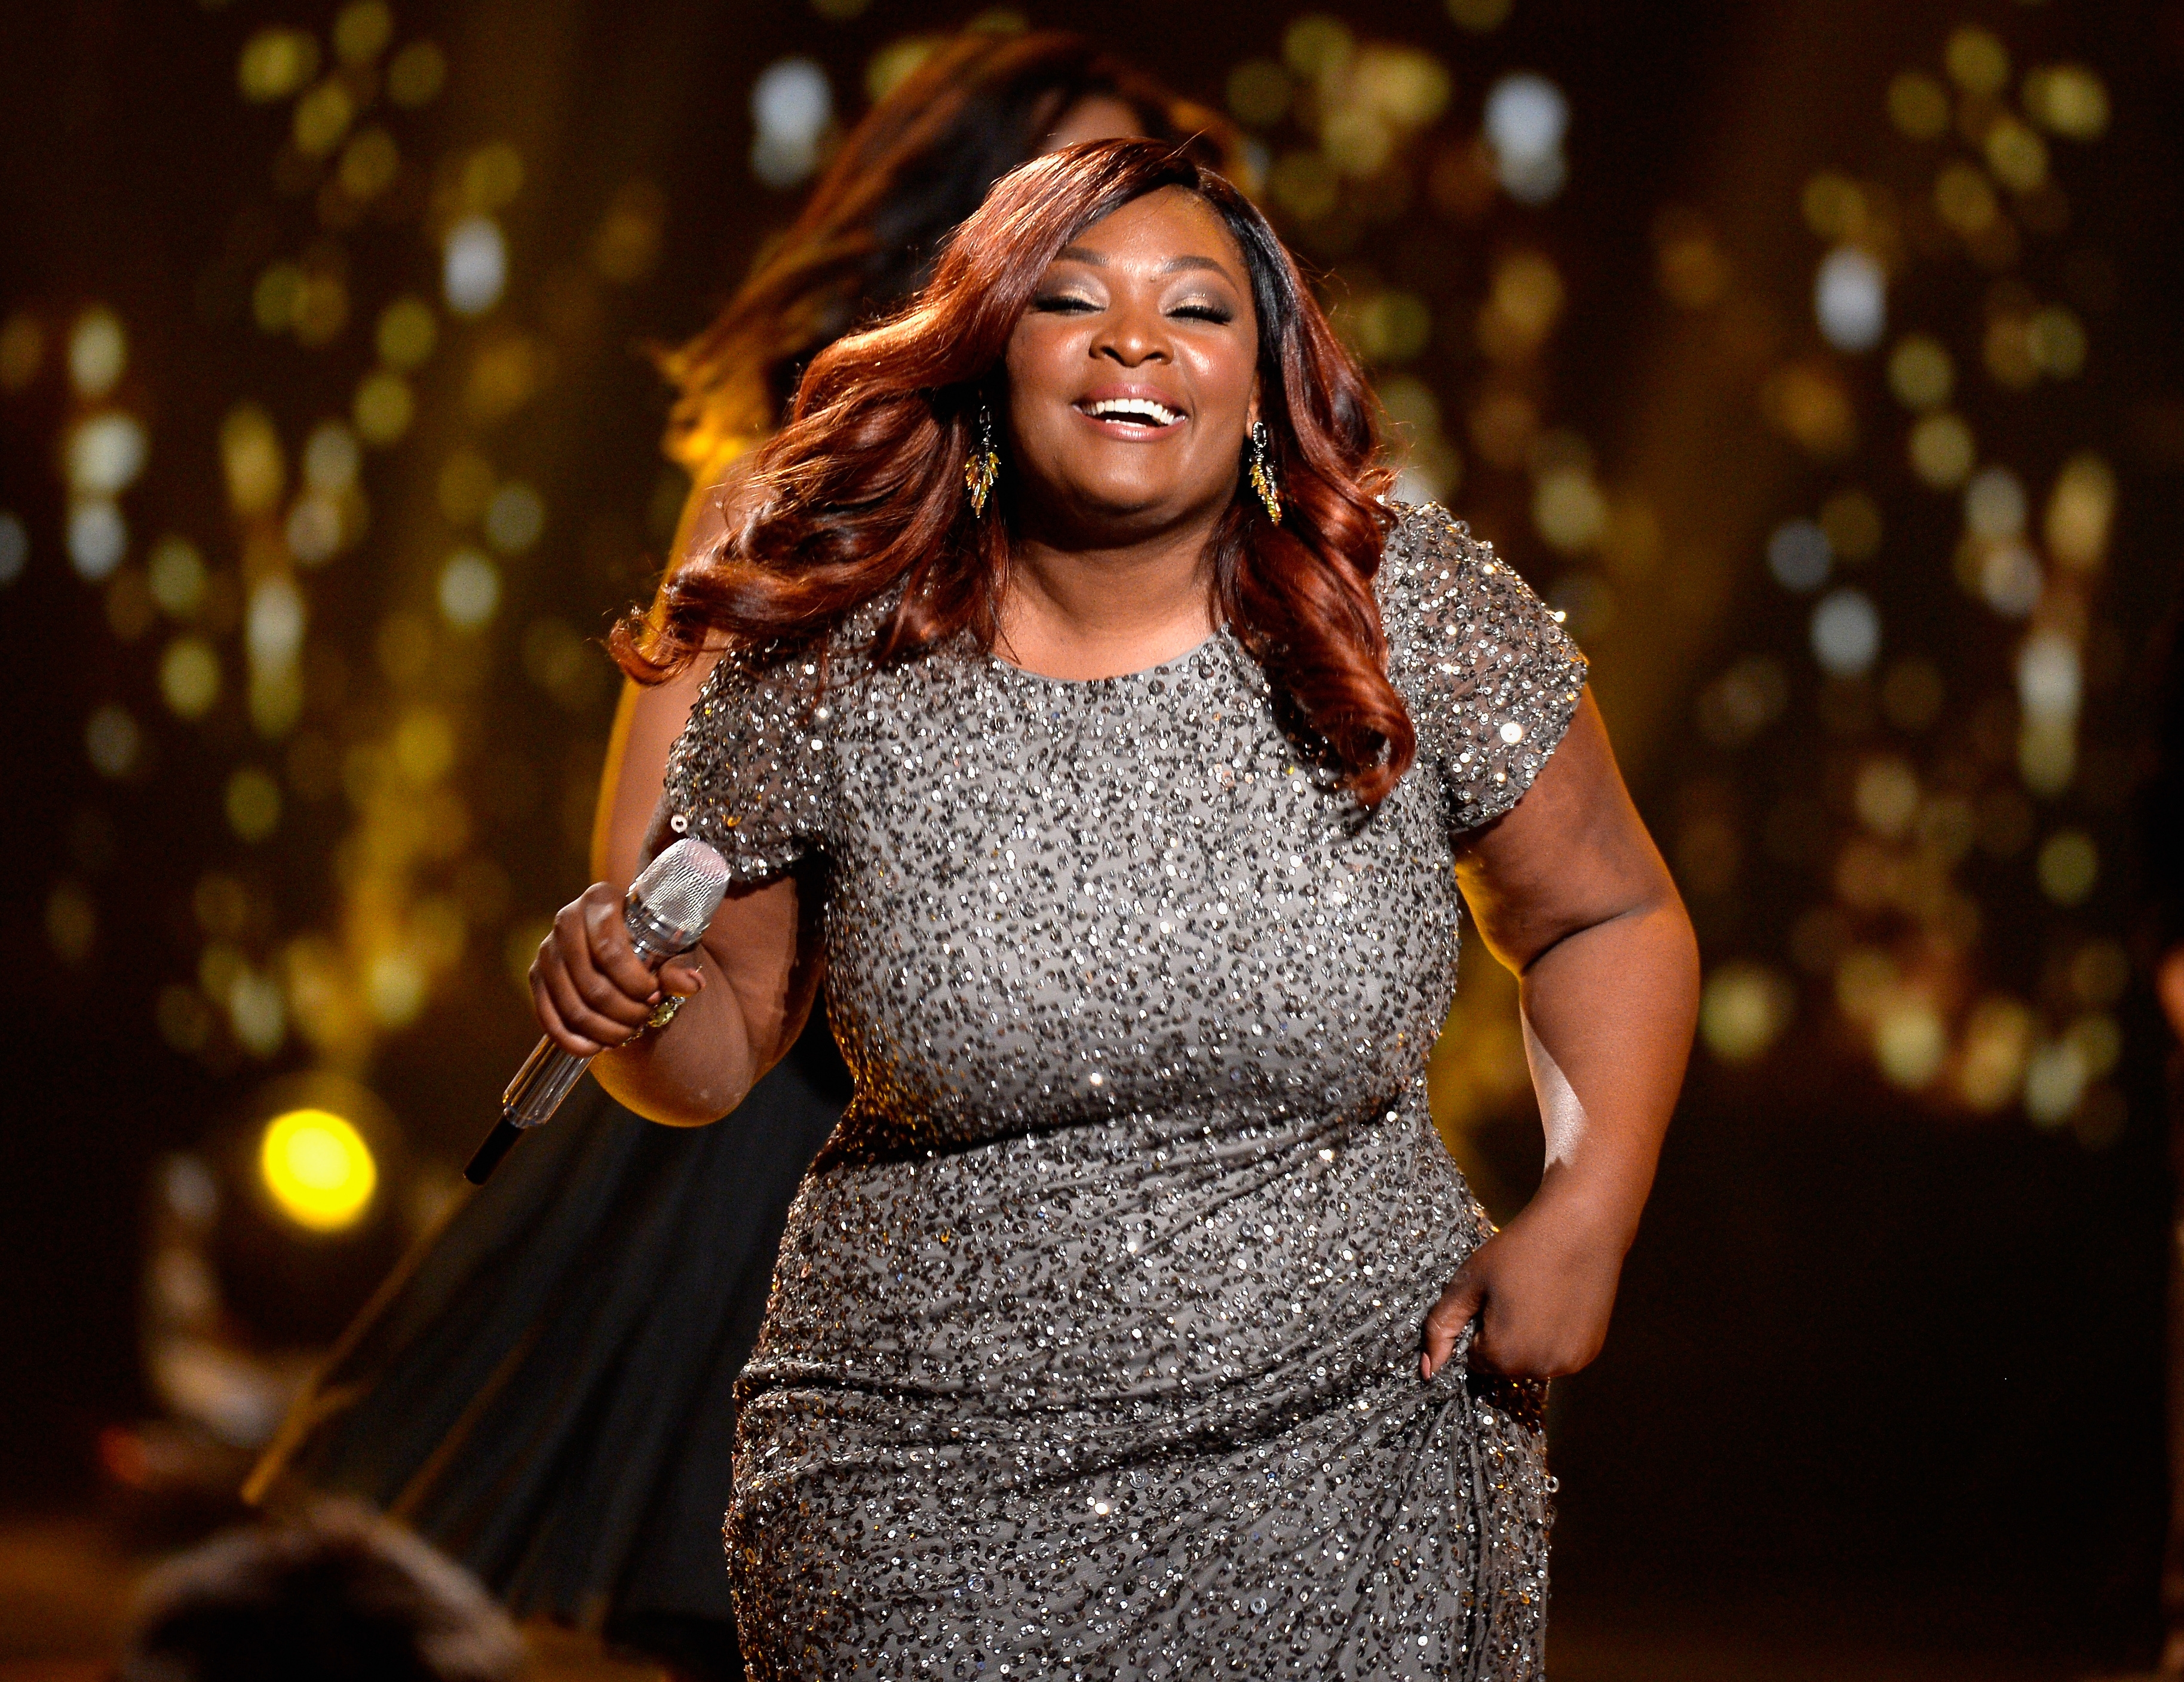 """""""We're going to sing some empowering music, as well as some things people can get up and dance to."""" – Candice Glover, """"American Idol"""" Season 12 winner"""